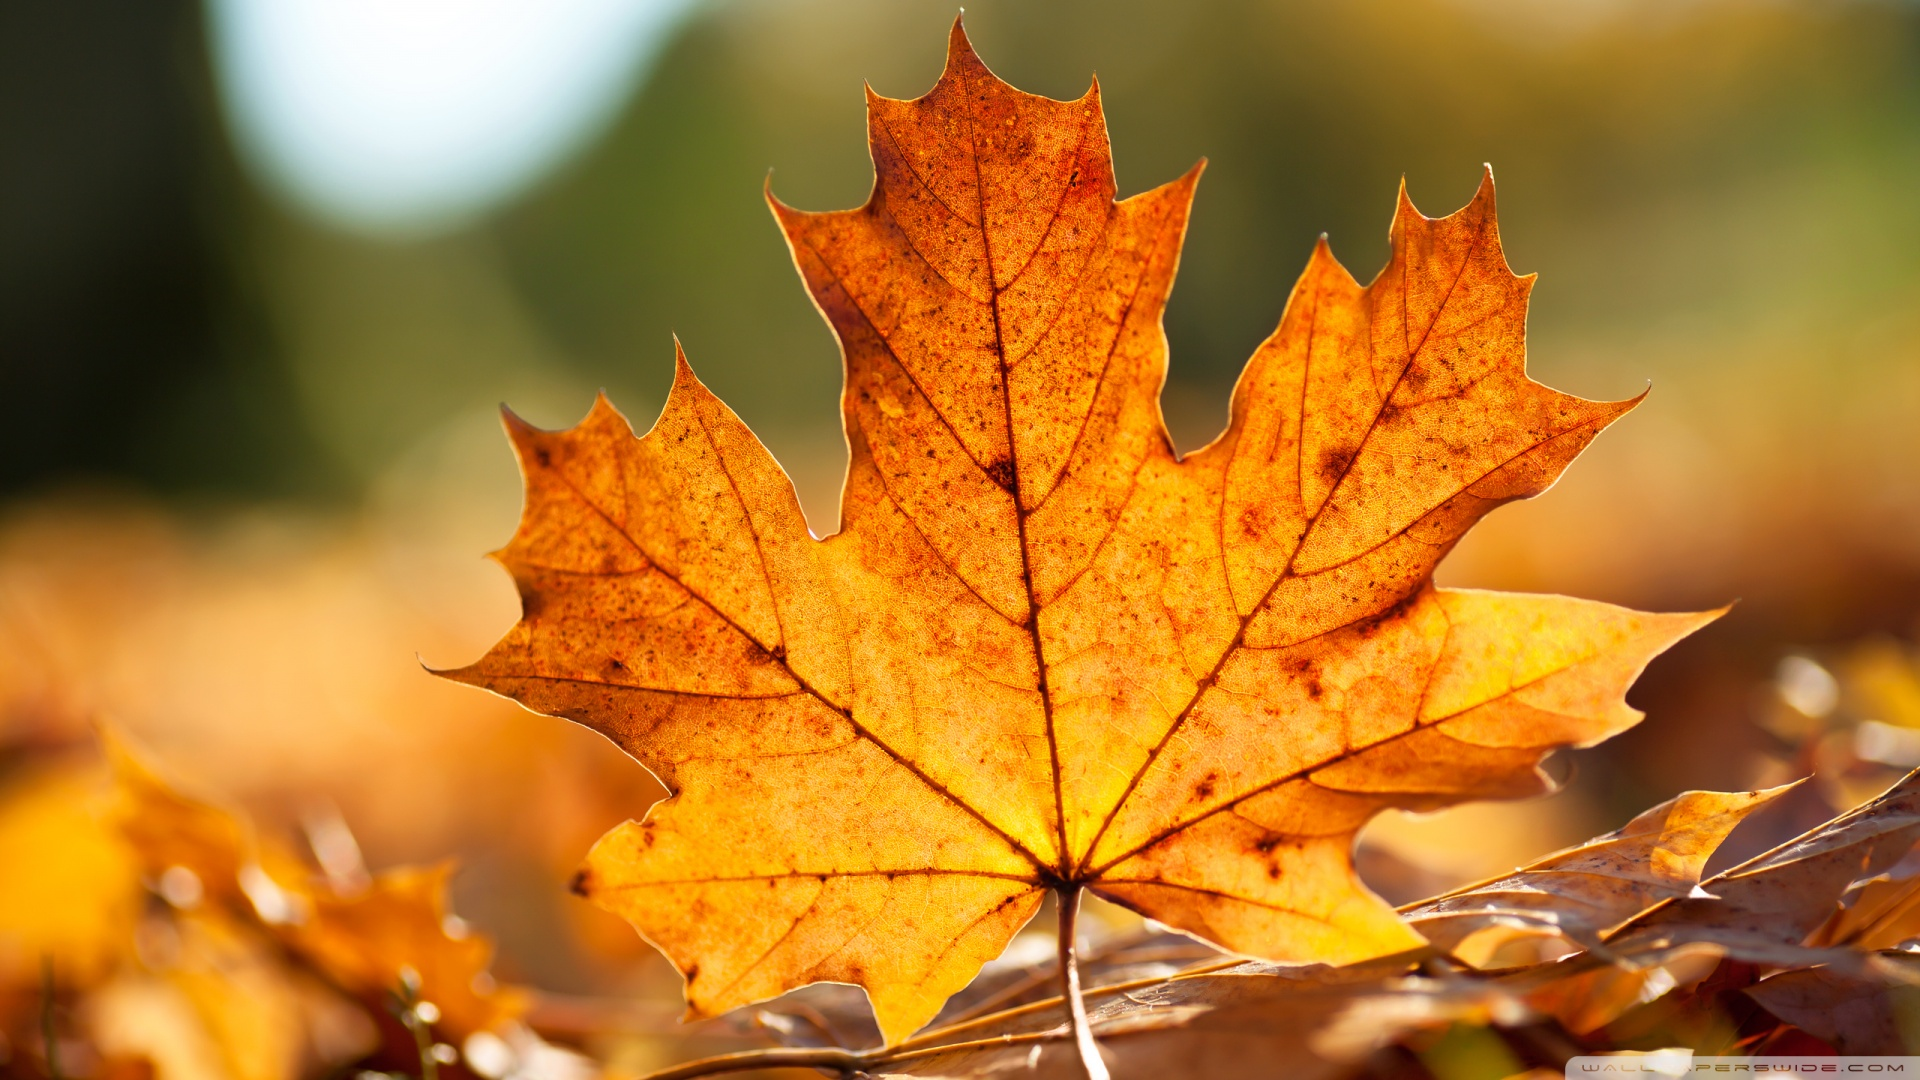 20 Latest Autumn Maple leaves HD Wallpaper 2011 1920x1080